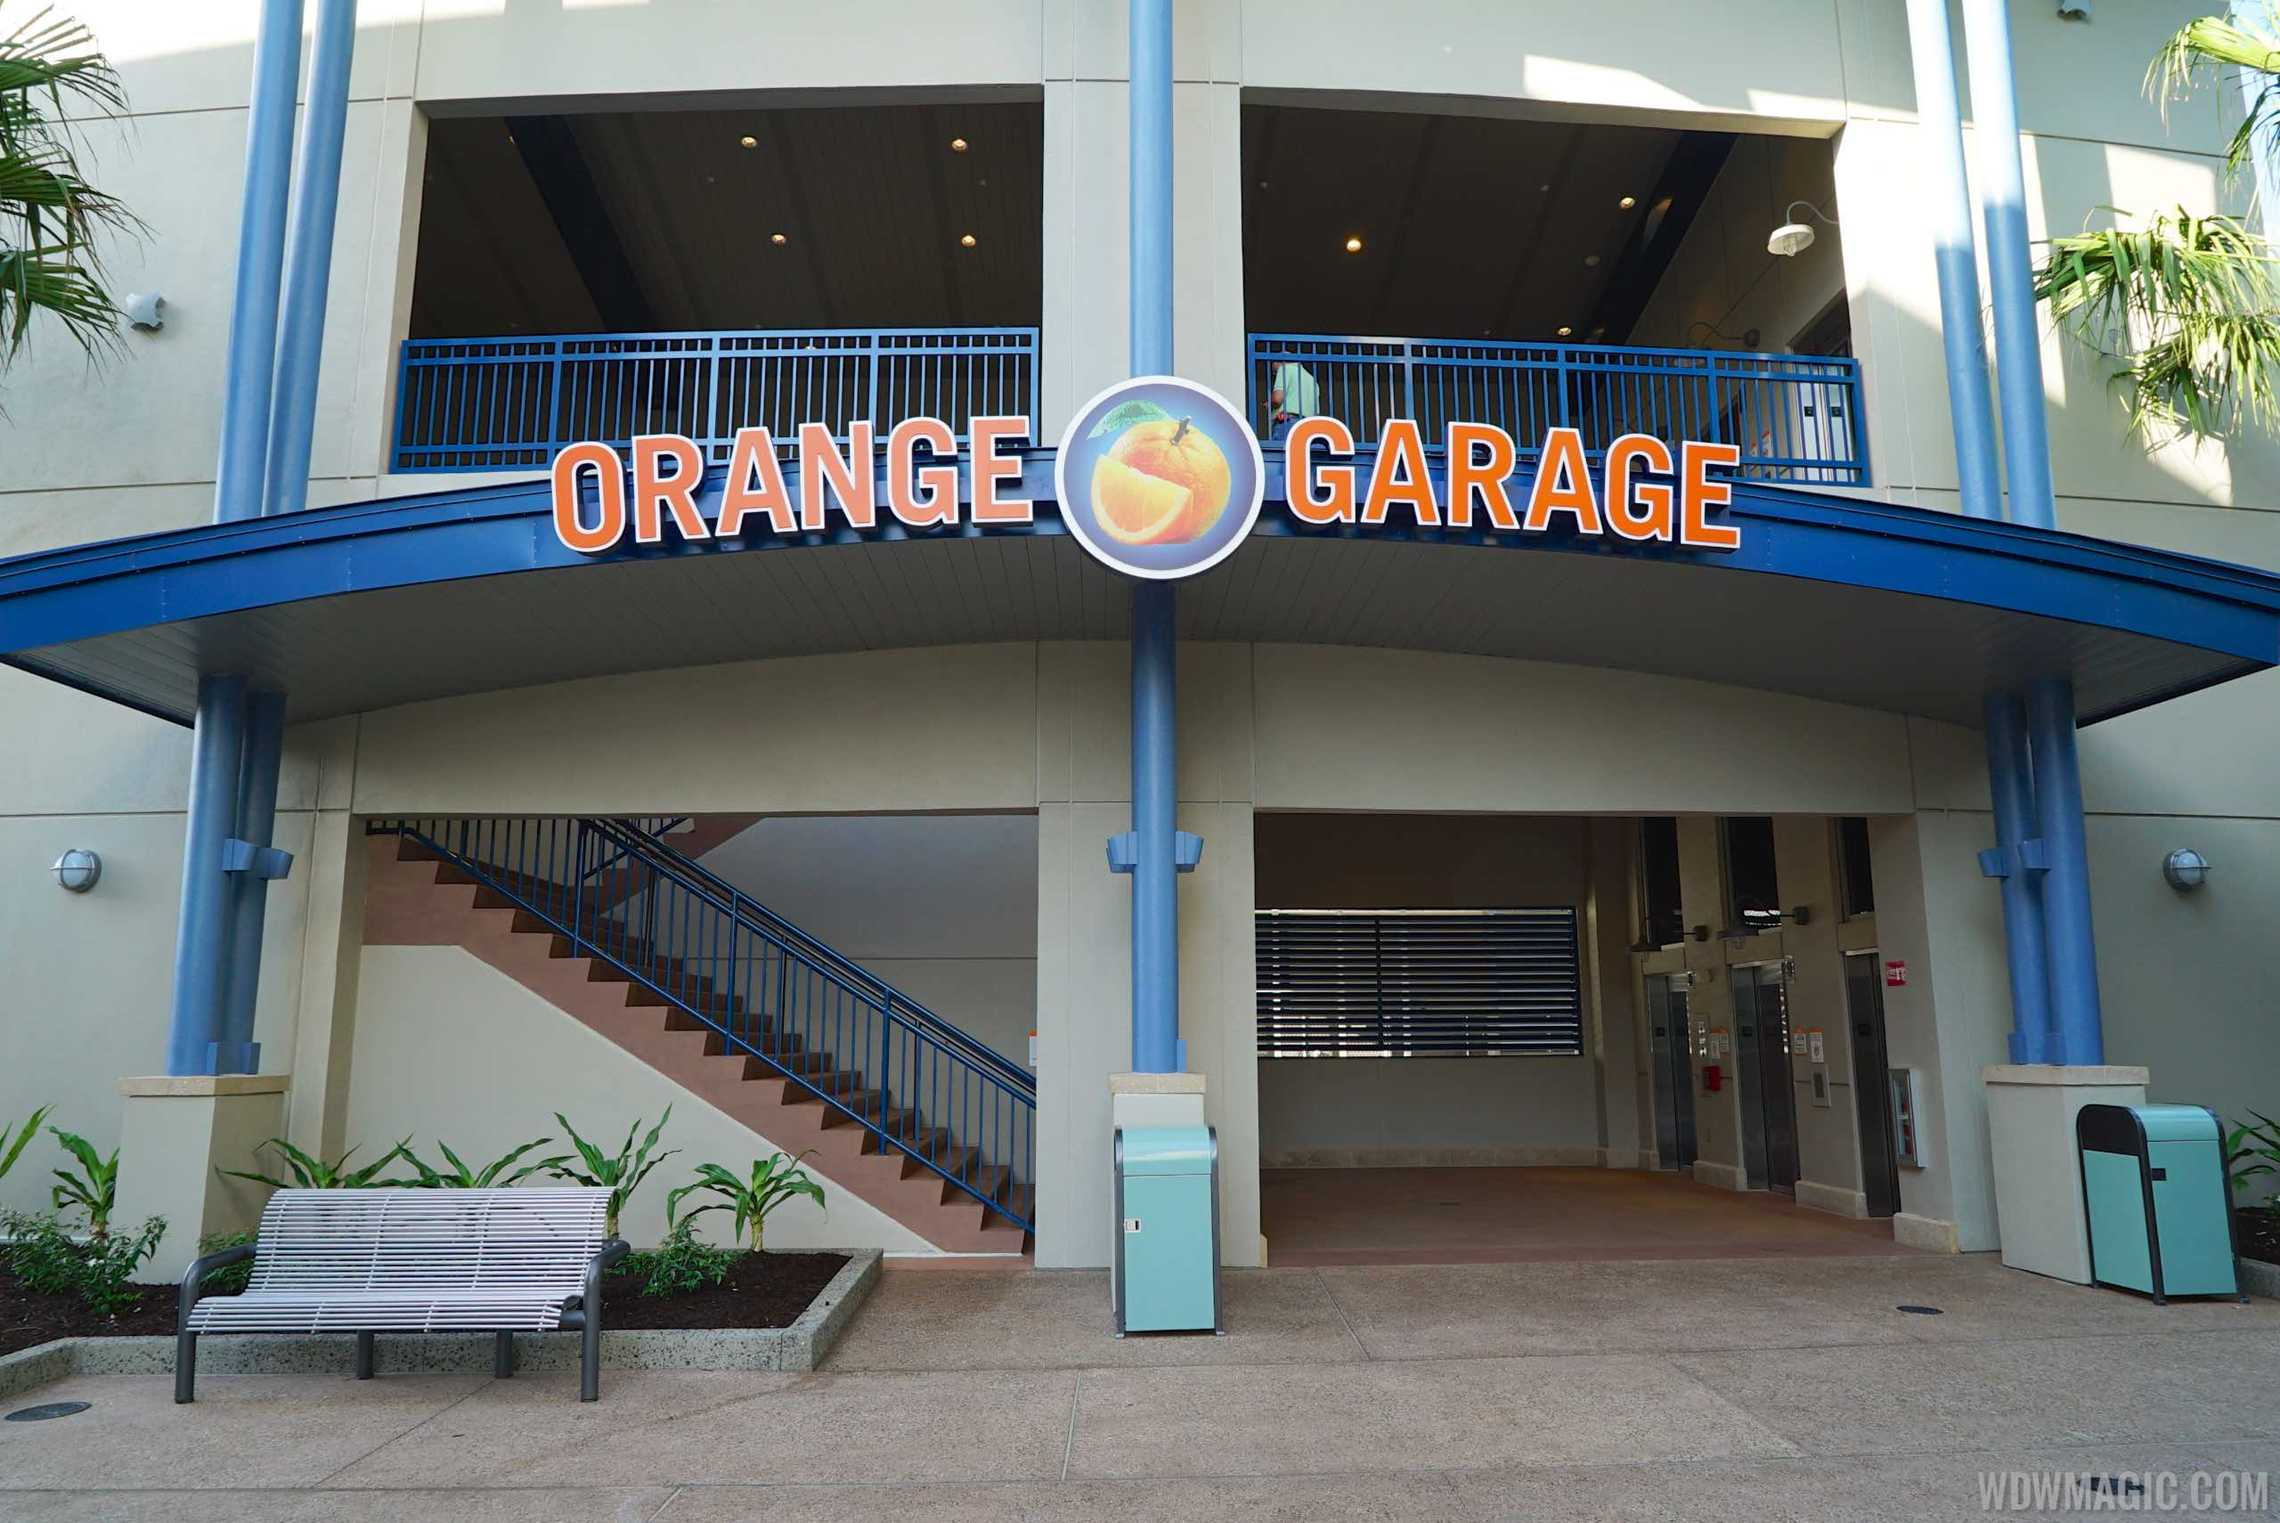 Disney Springs Orange Parking Garage east connector - Ground level entrance